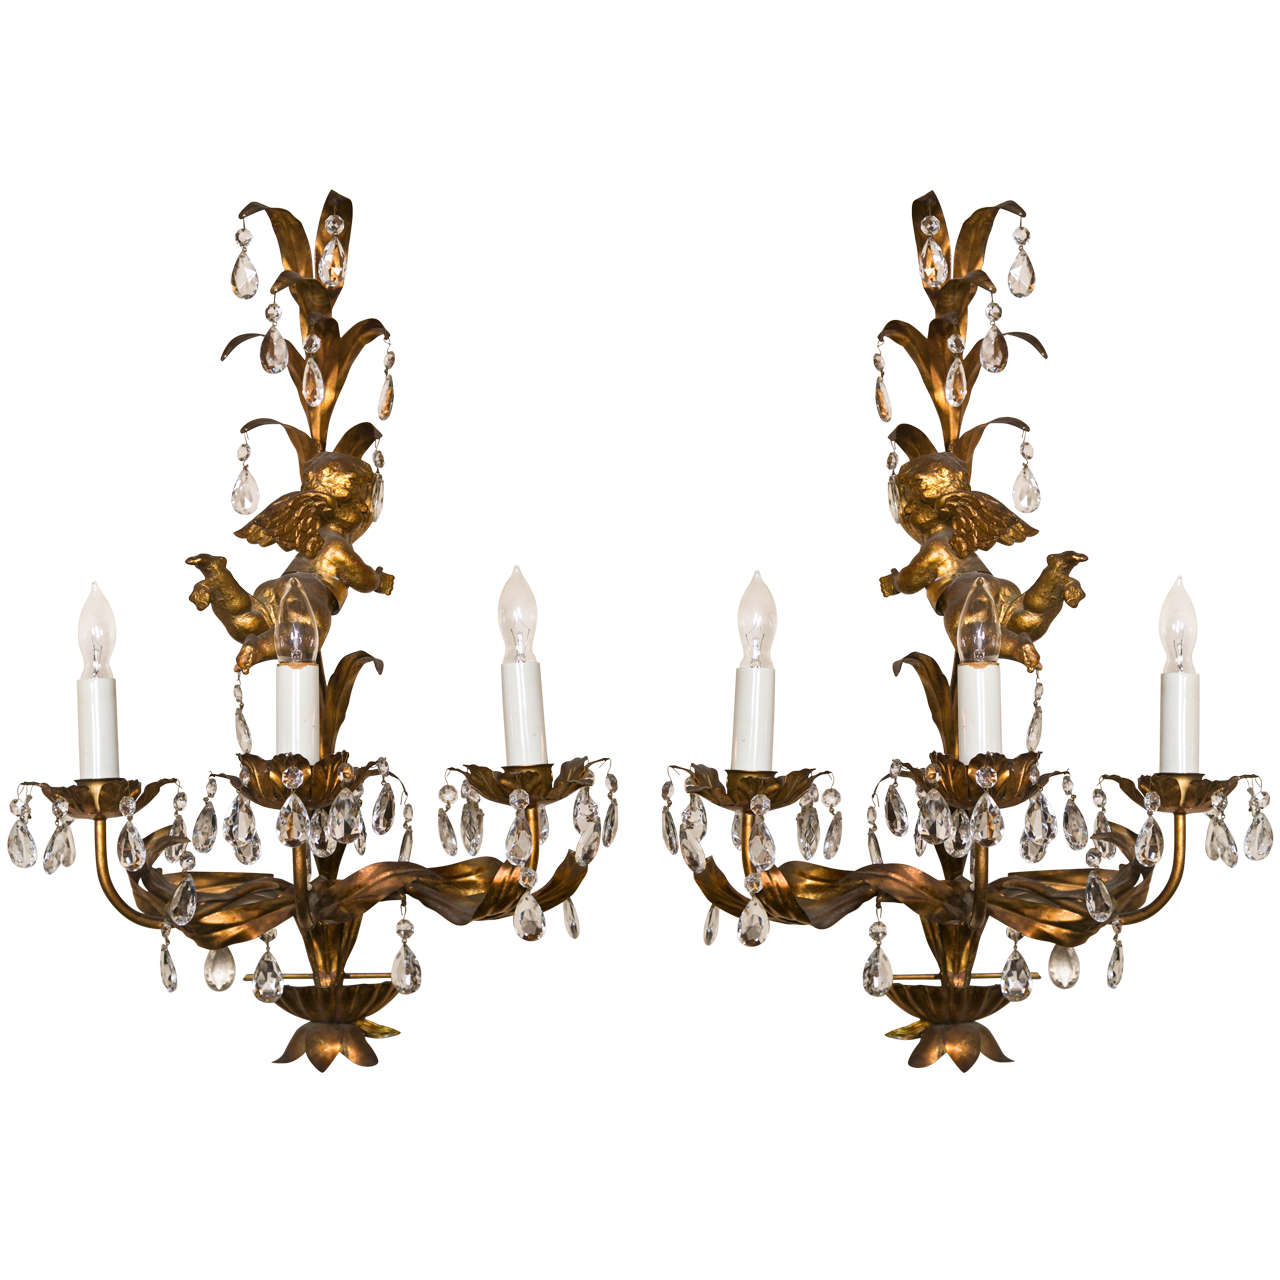 French Brass Wall Sconces : French Gilt-Brass Three-Light Wall Sconces For Sale at 1stdibs